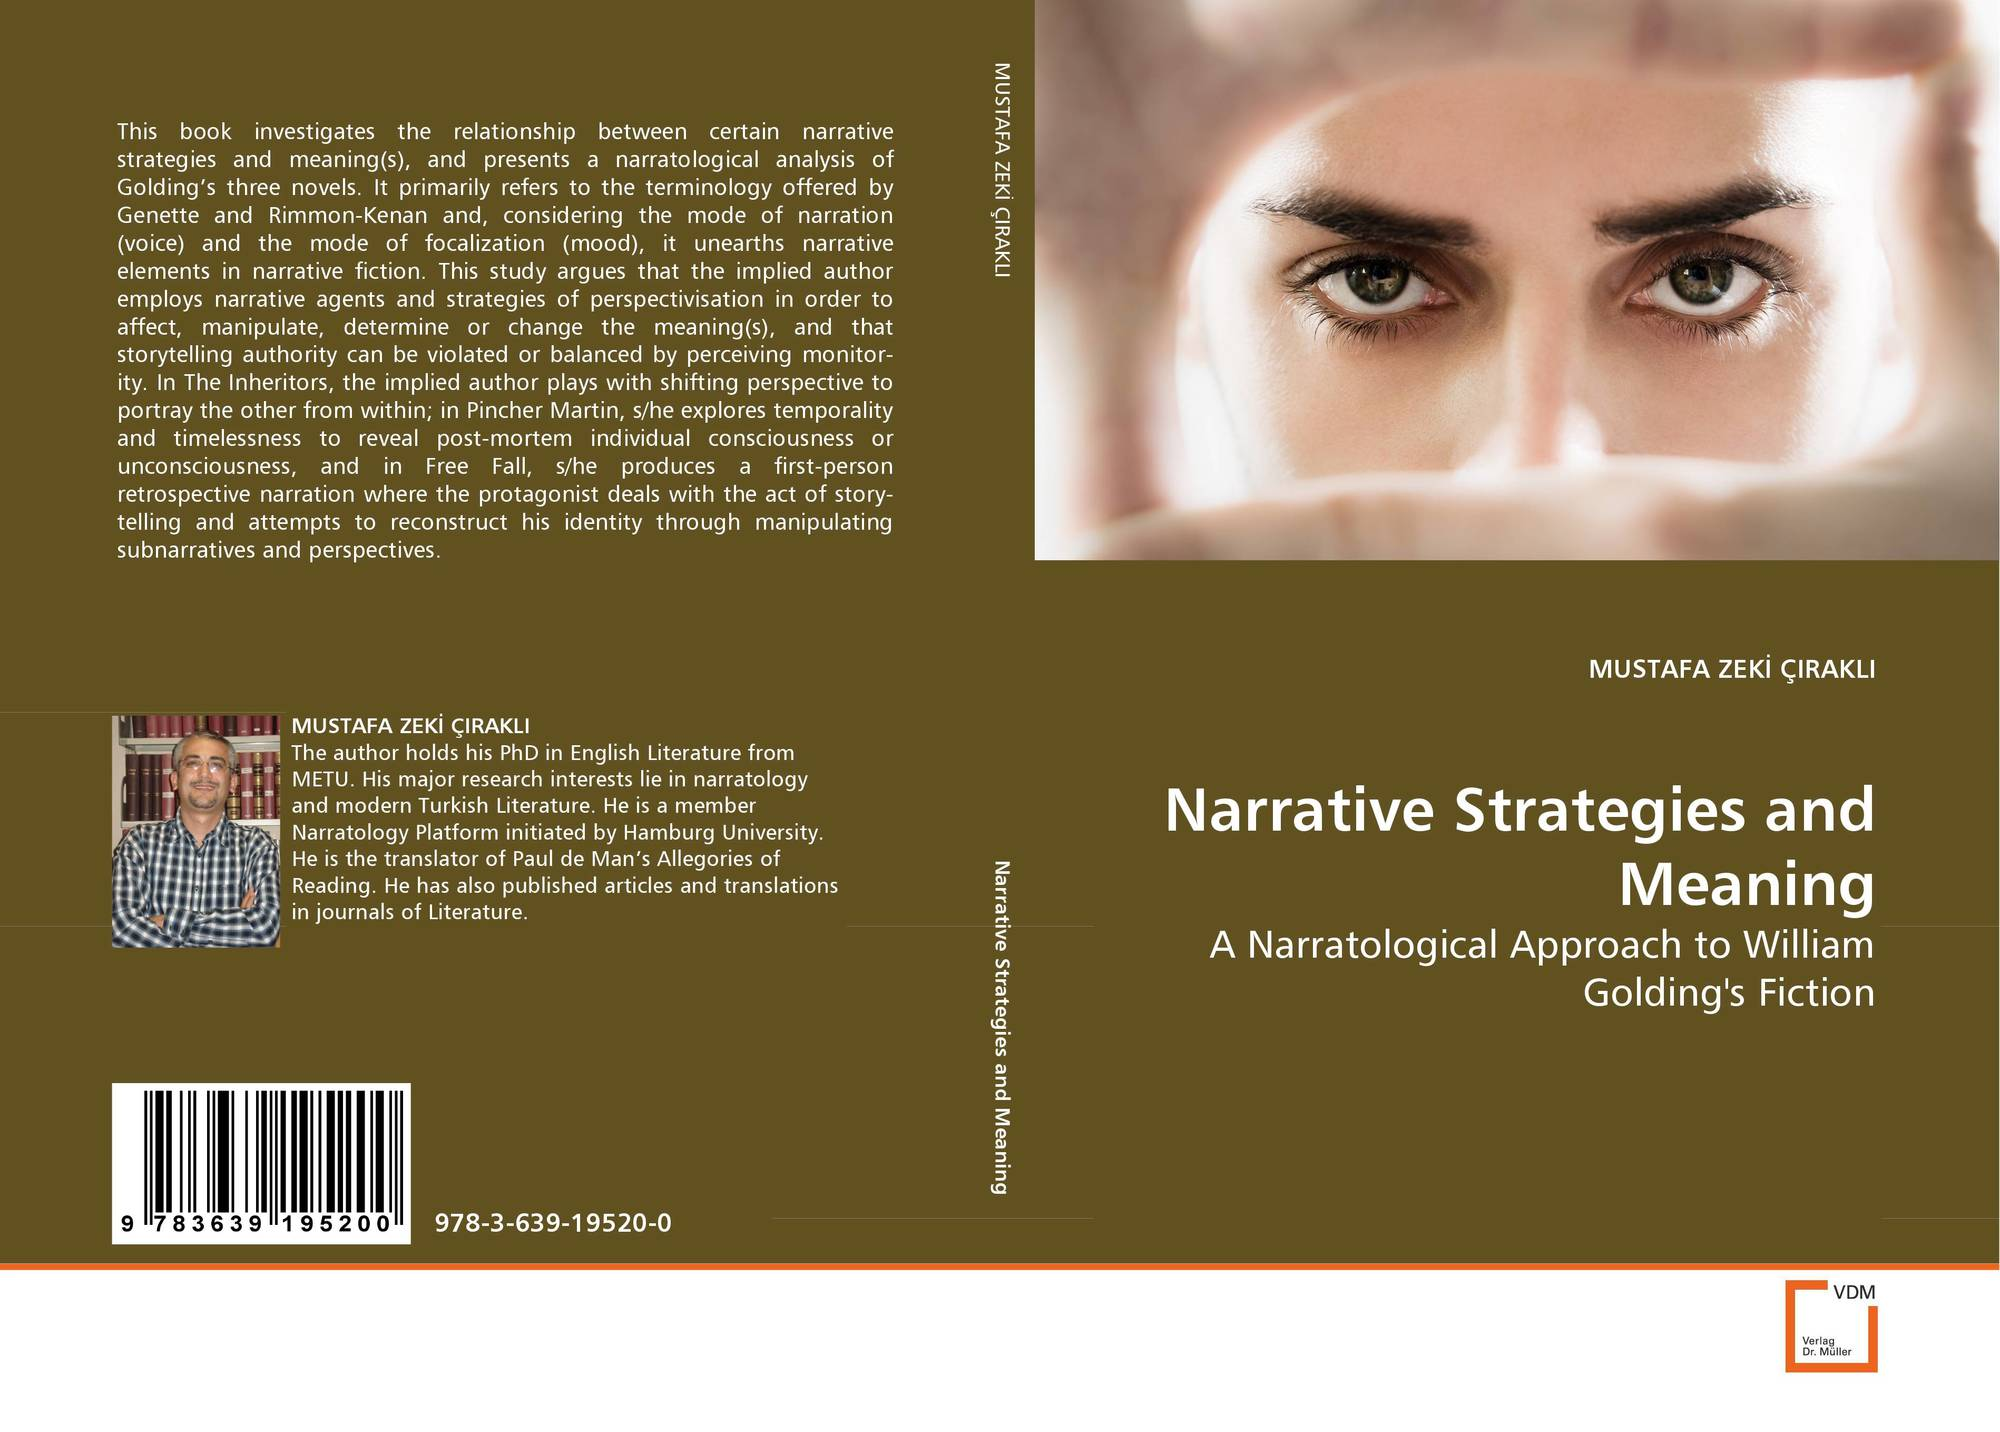 Narrative Strategies and Meaning, 978-3-639-19520-0, 3639195205